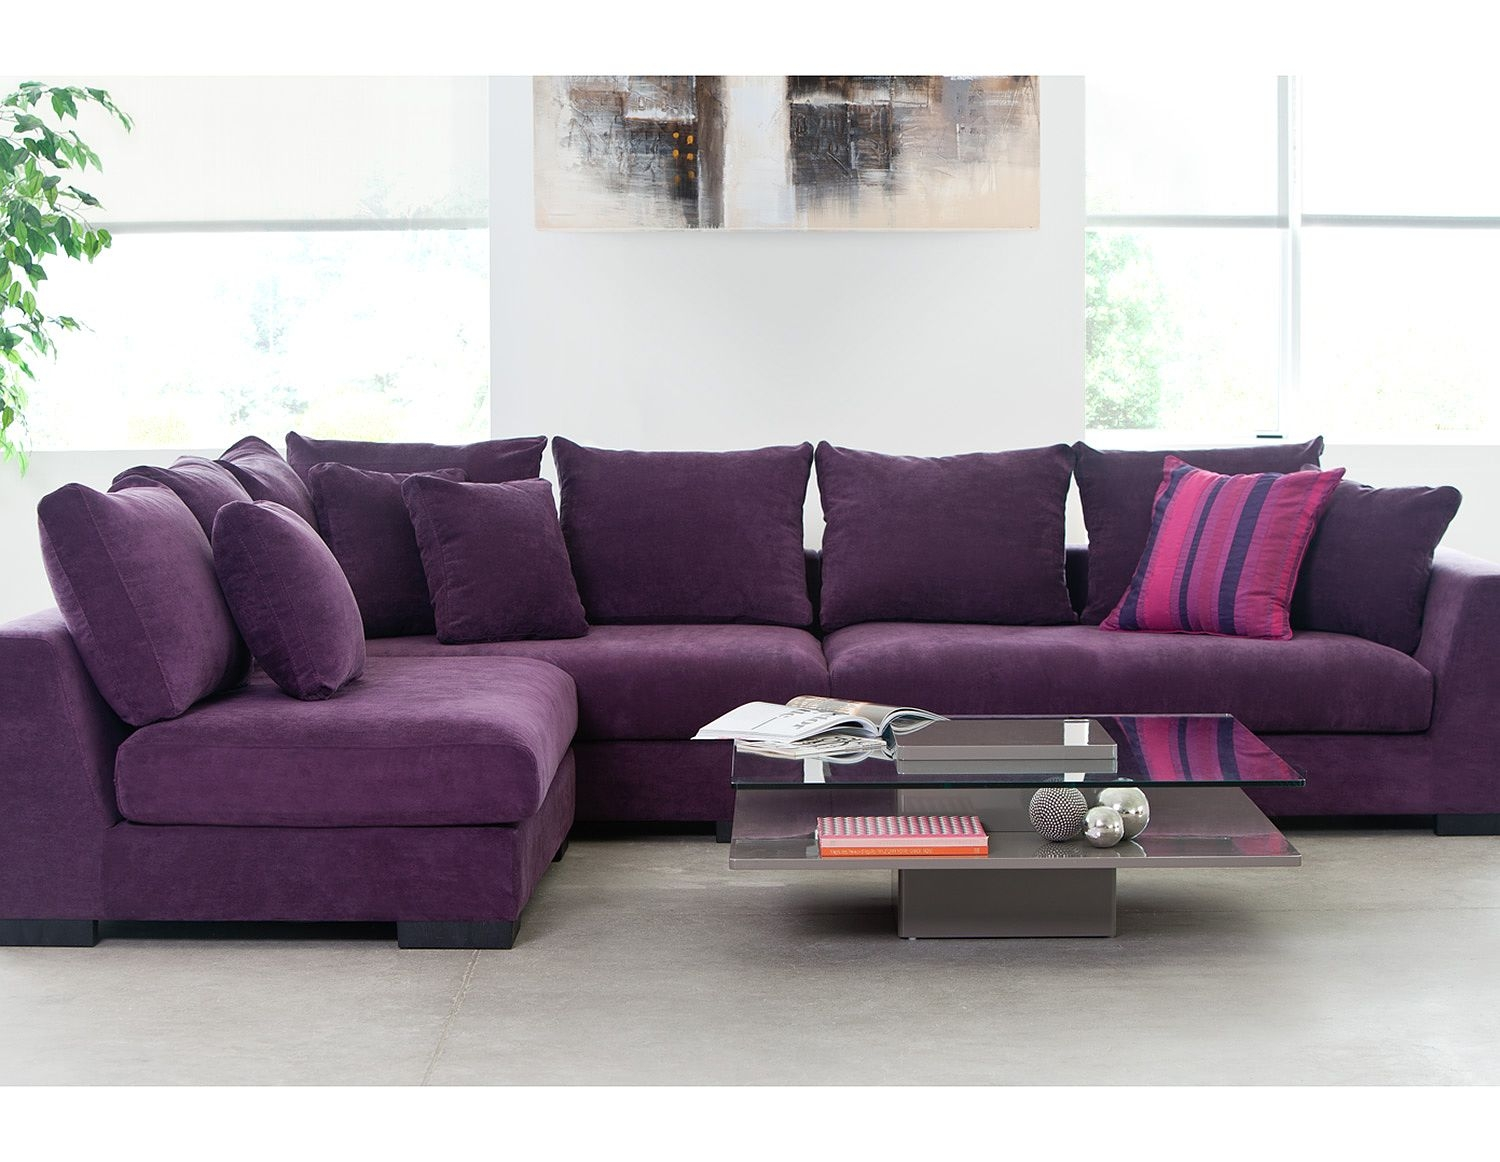 Exceptional Living Room Sectional Sofas Cooper Purple Faints A Couch With Regard To Eggplant  Sectional Sofa (